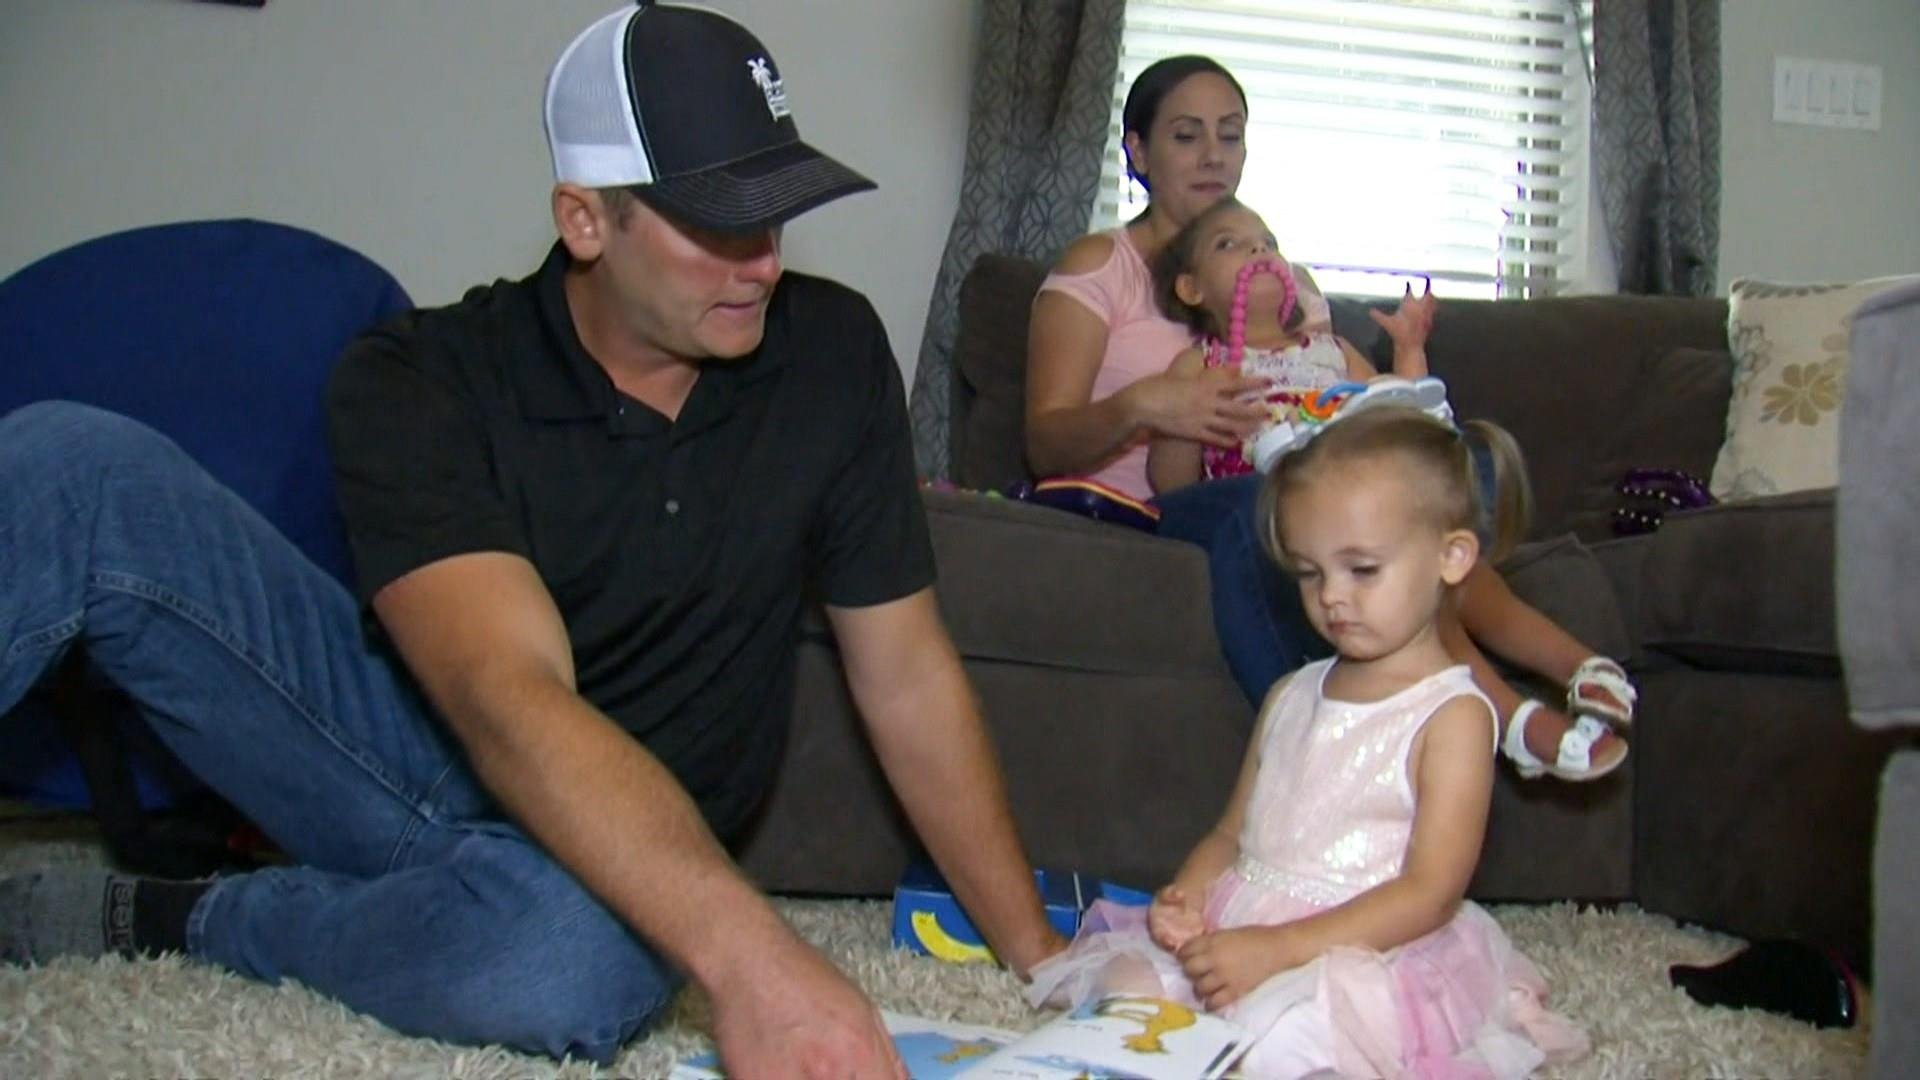 Army vet and wife consider divorce to afford daughter's health care